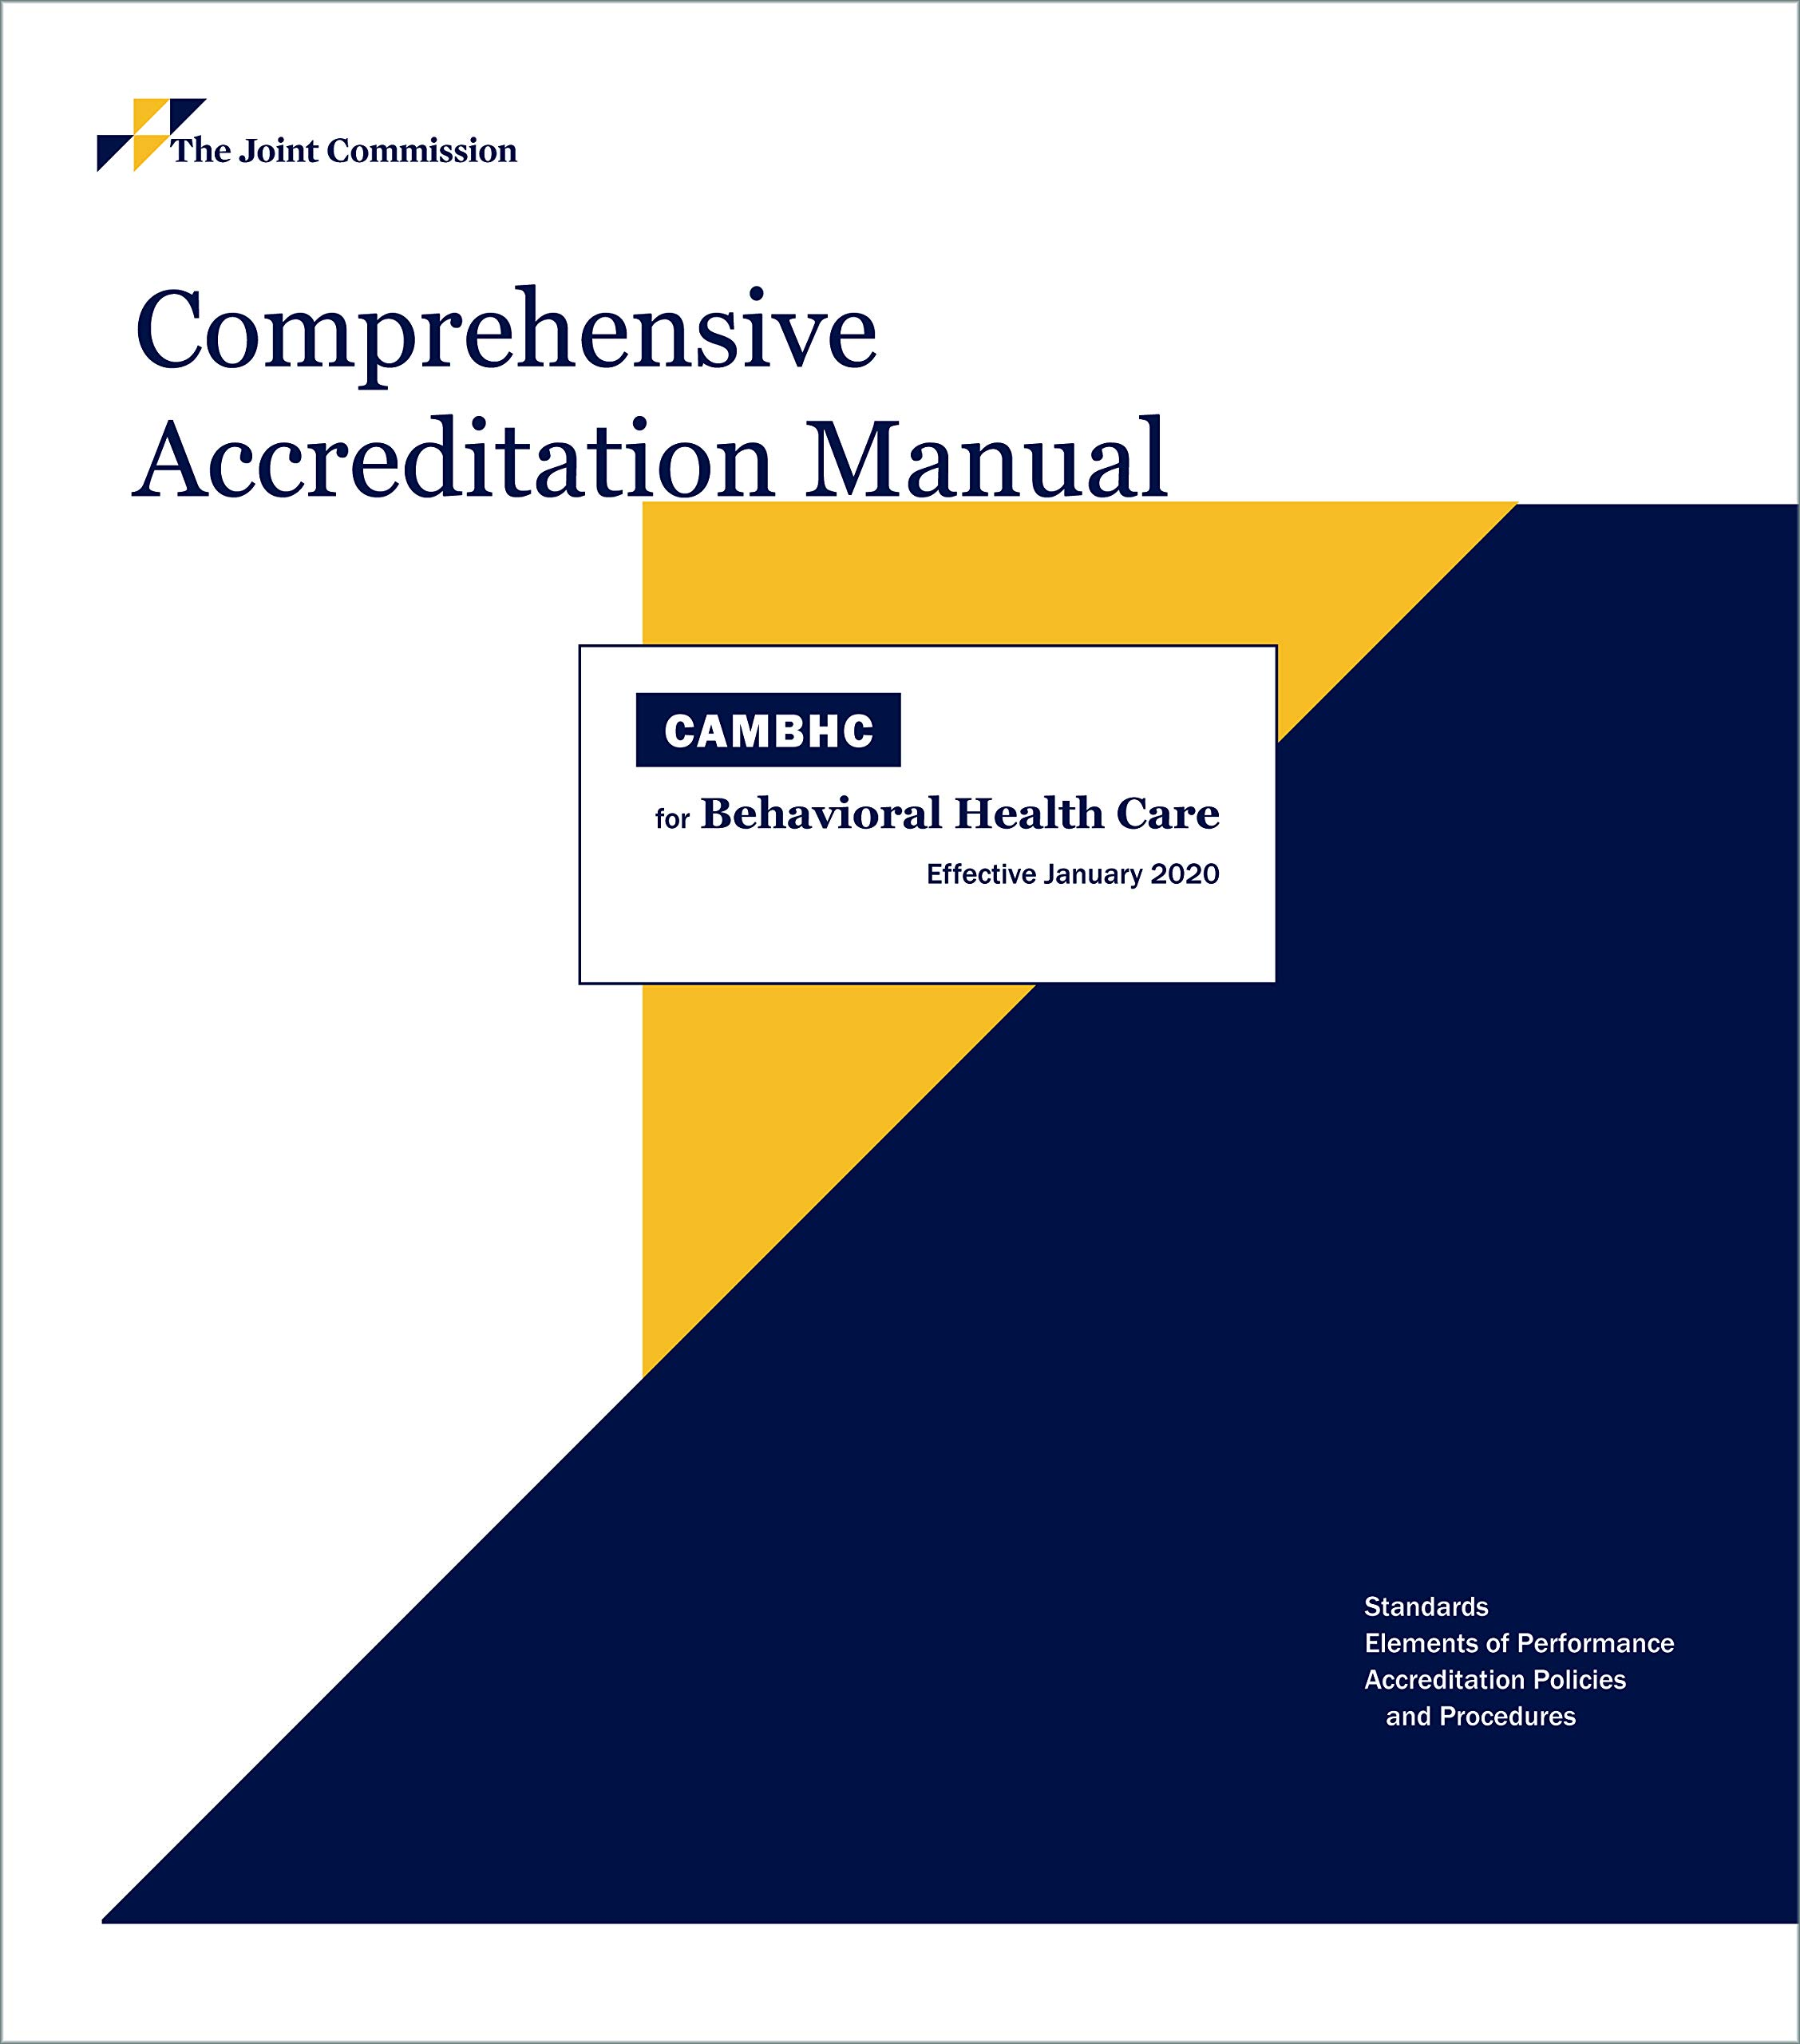 Image Of2020 Comprehensive Accreditation Manual For Behavioral Health Care (CAMBHC)